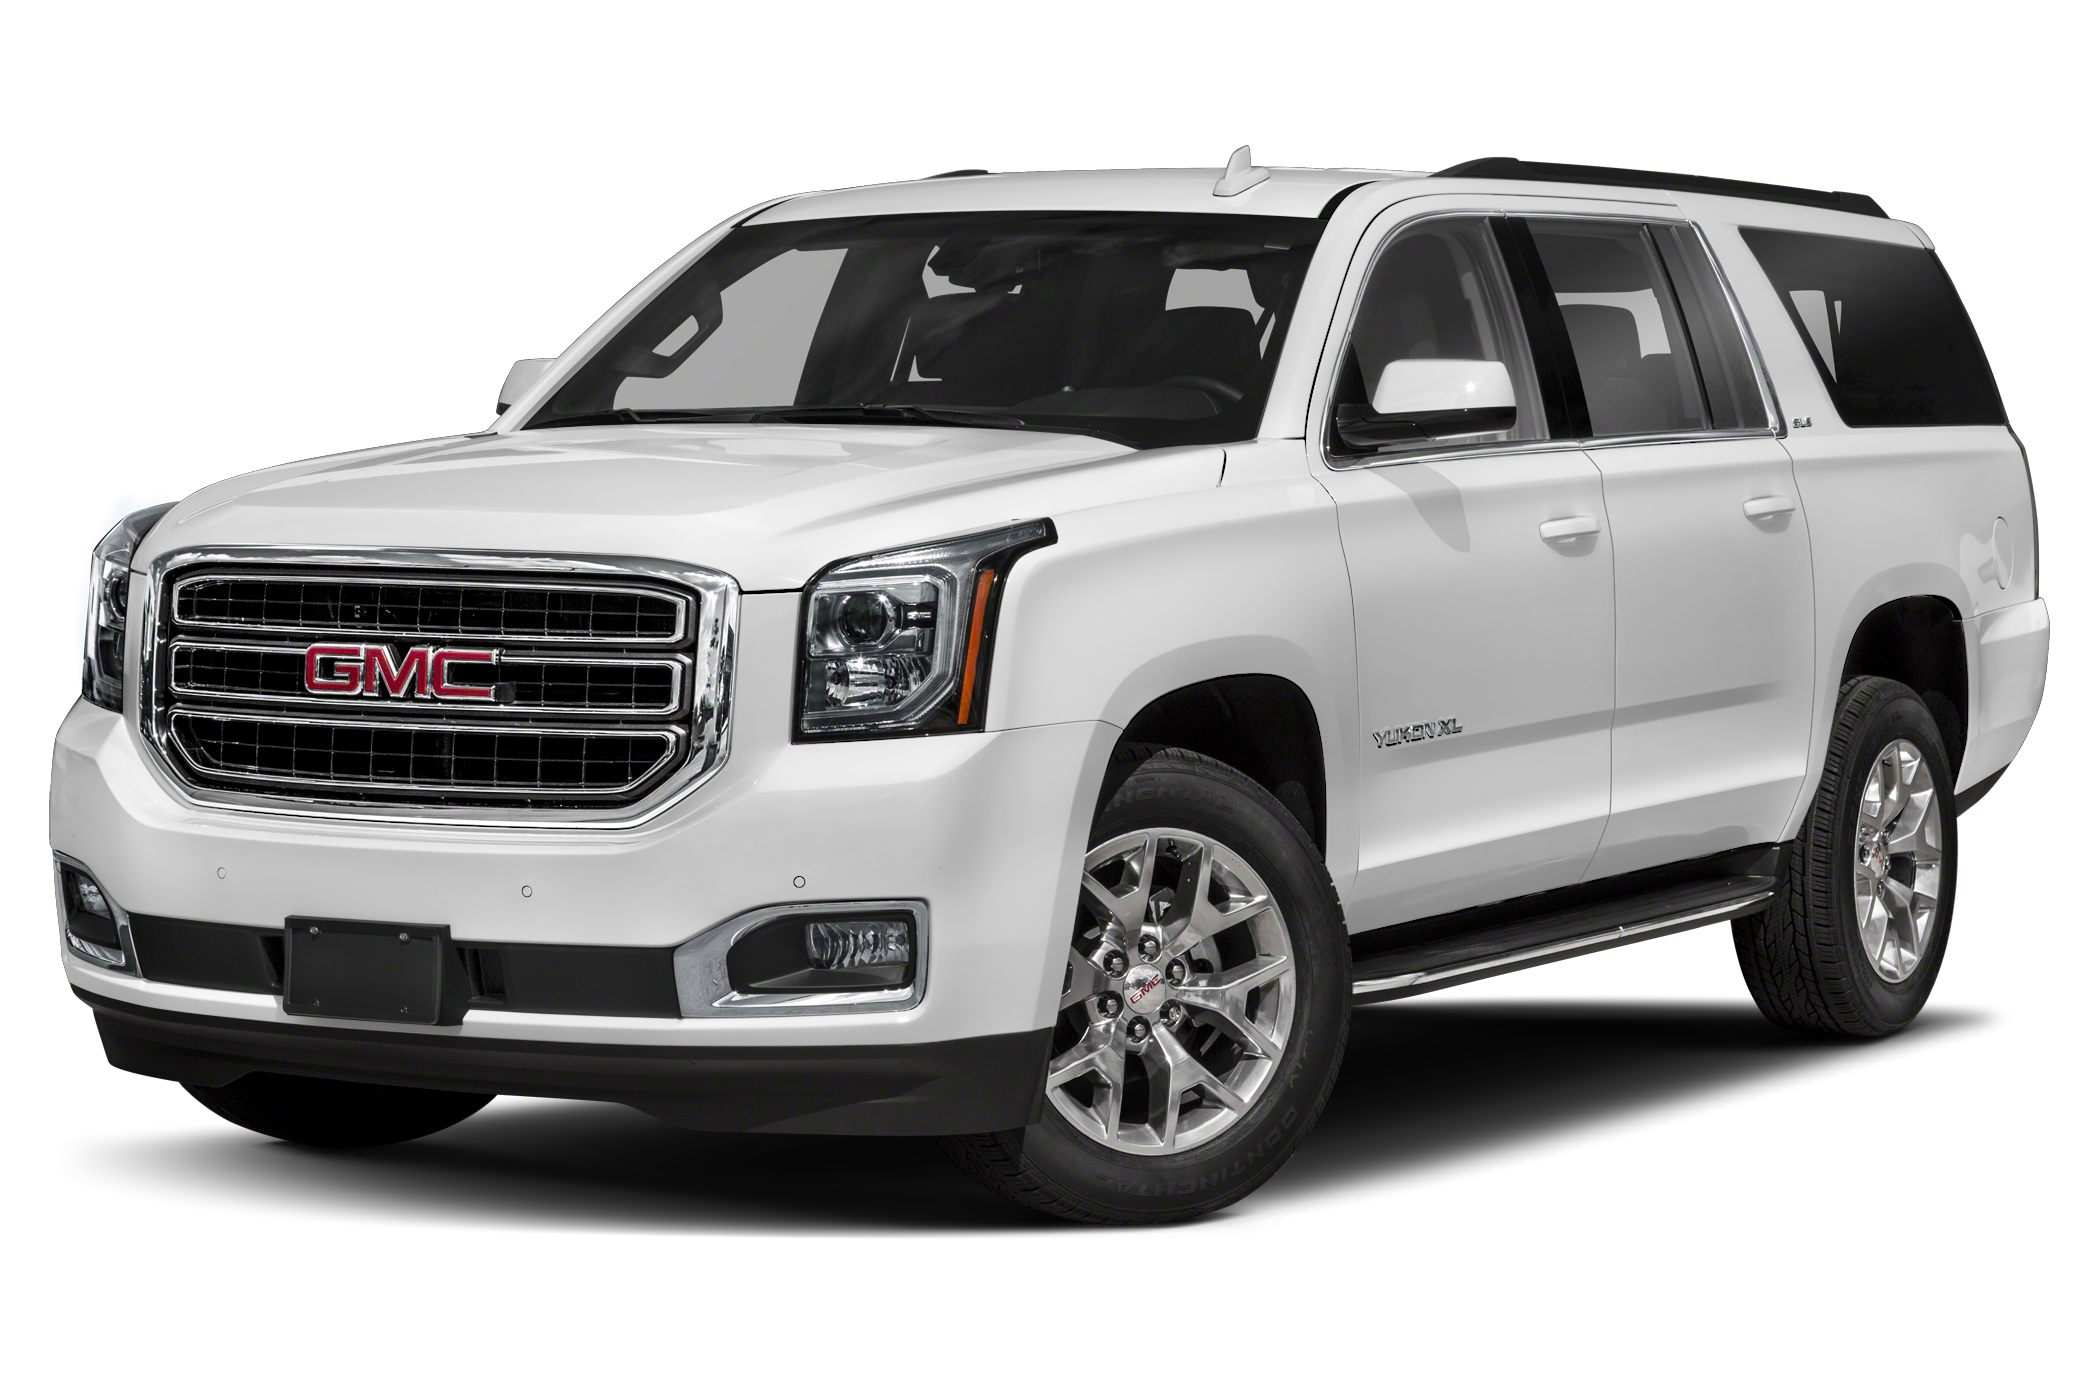 27 Gallery of 2020 Gmc Yukon Xl Slt Concept for 2020 Gmc Yukon Xl Slt